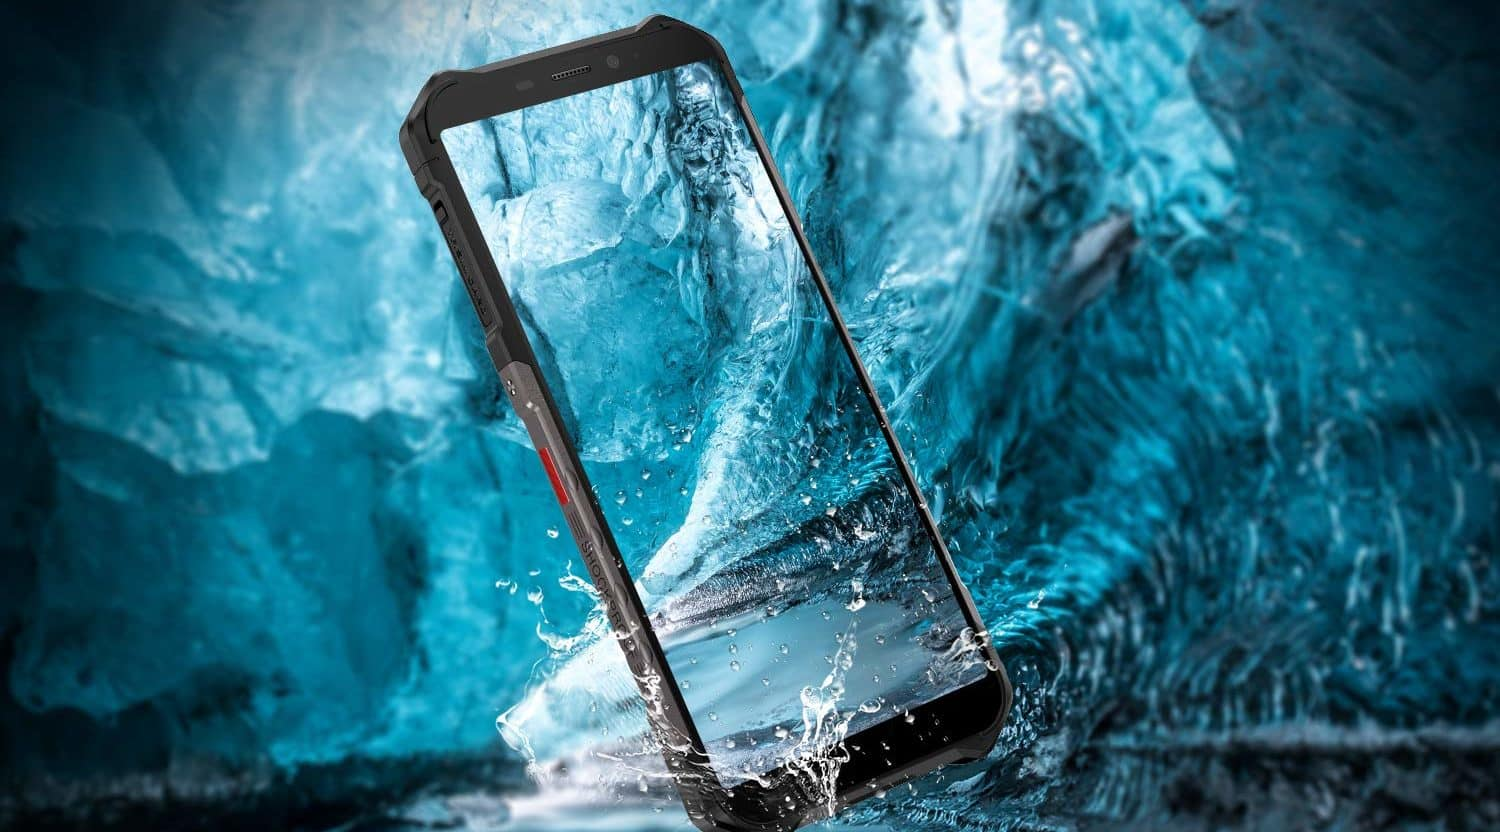 Best Phones for Outdoor Travel - Ulefone Armor X5 Rating